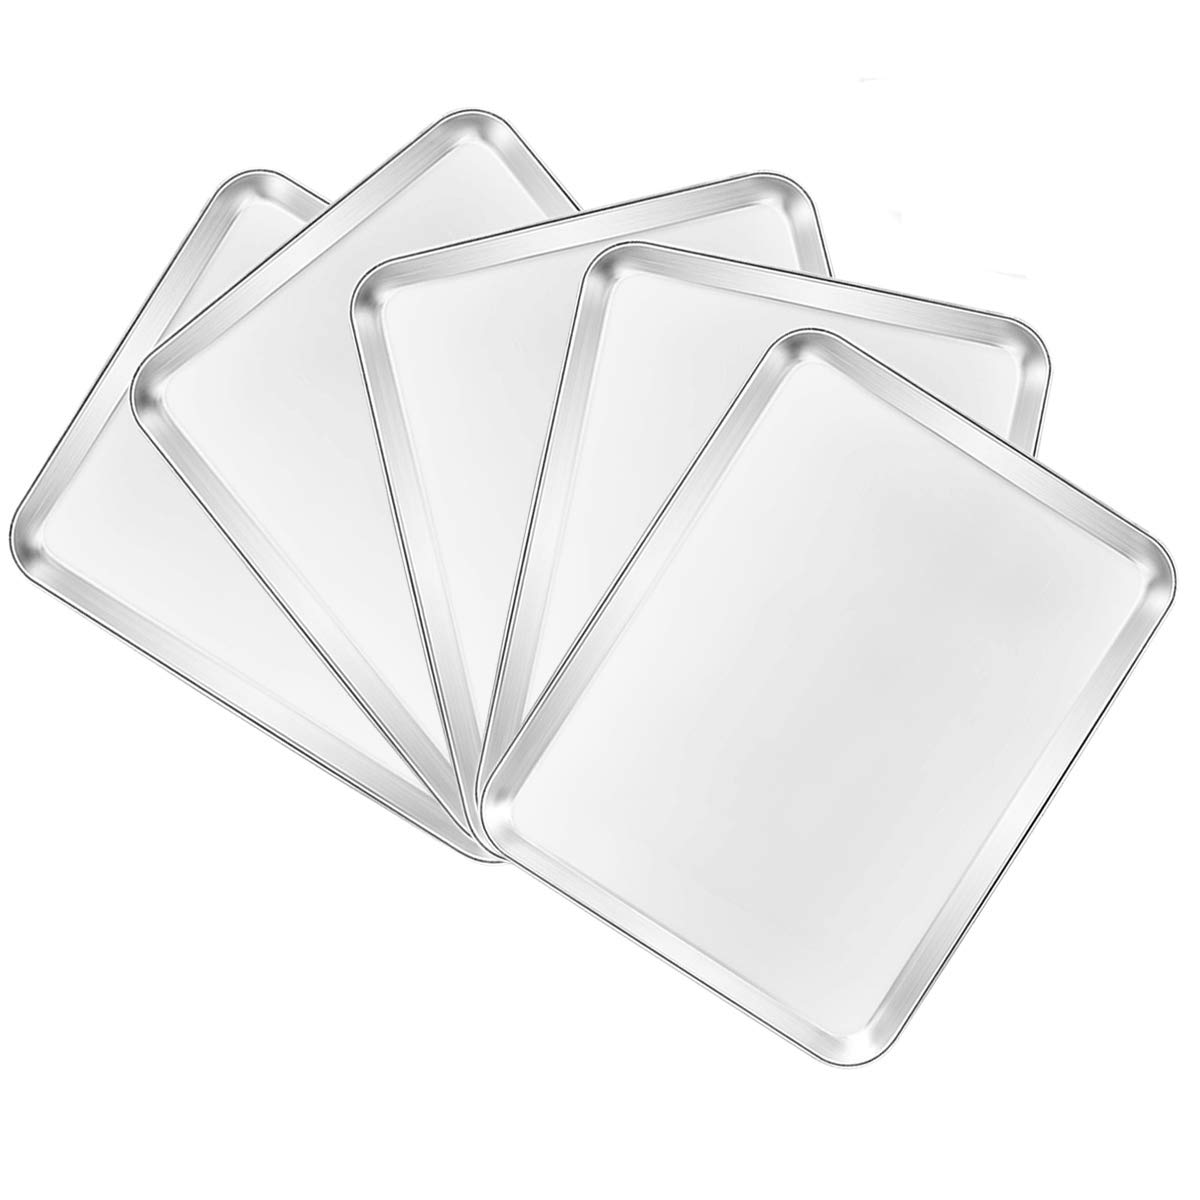 Bastwe Baking Sheet Set of 5, Stainless Steel 5-Piece Cookie Sheet, Toaster Oven Baking Pan Set, Rectangle Size 16 x 12 x 1 inch, Healthy & Non Toxic, Mirror Finish & Rust Free, Dishwasher Safe